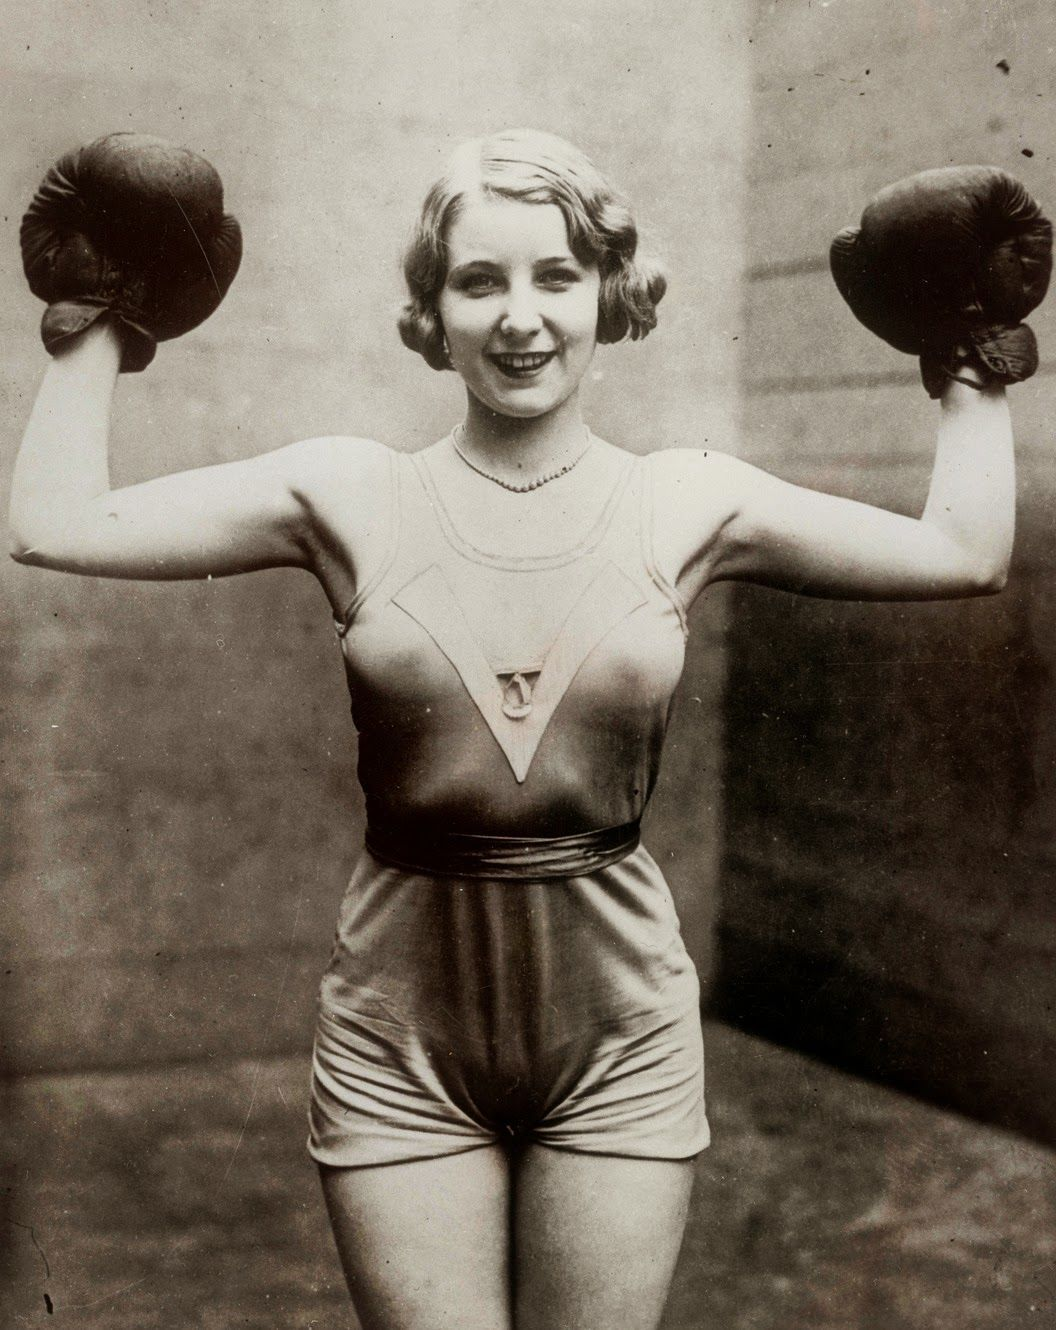 A female boxer, circa 1920s  | Photos of Interesting People